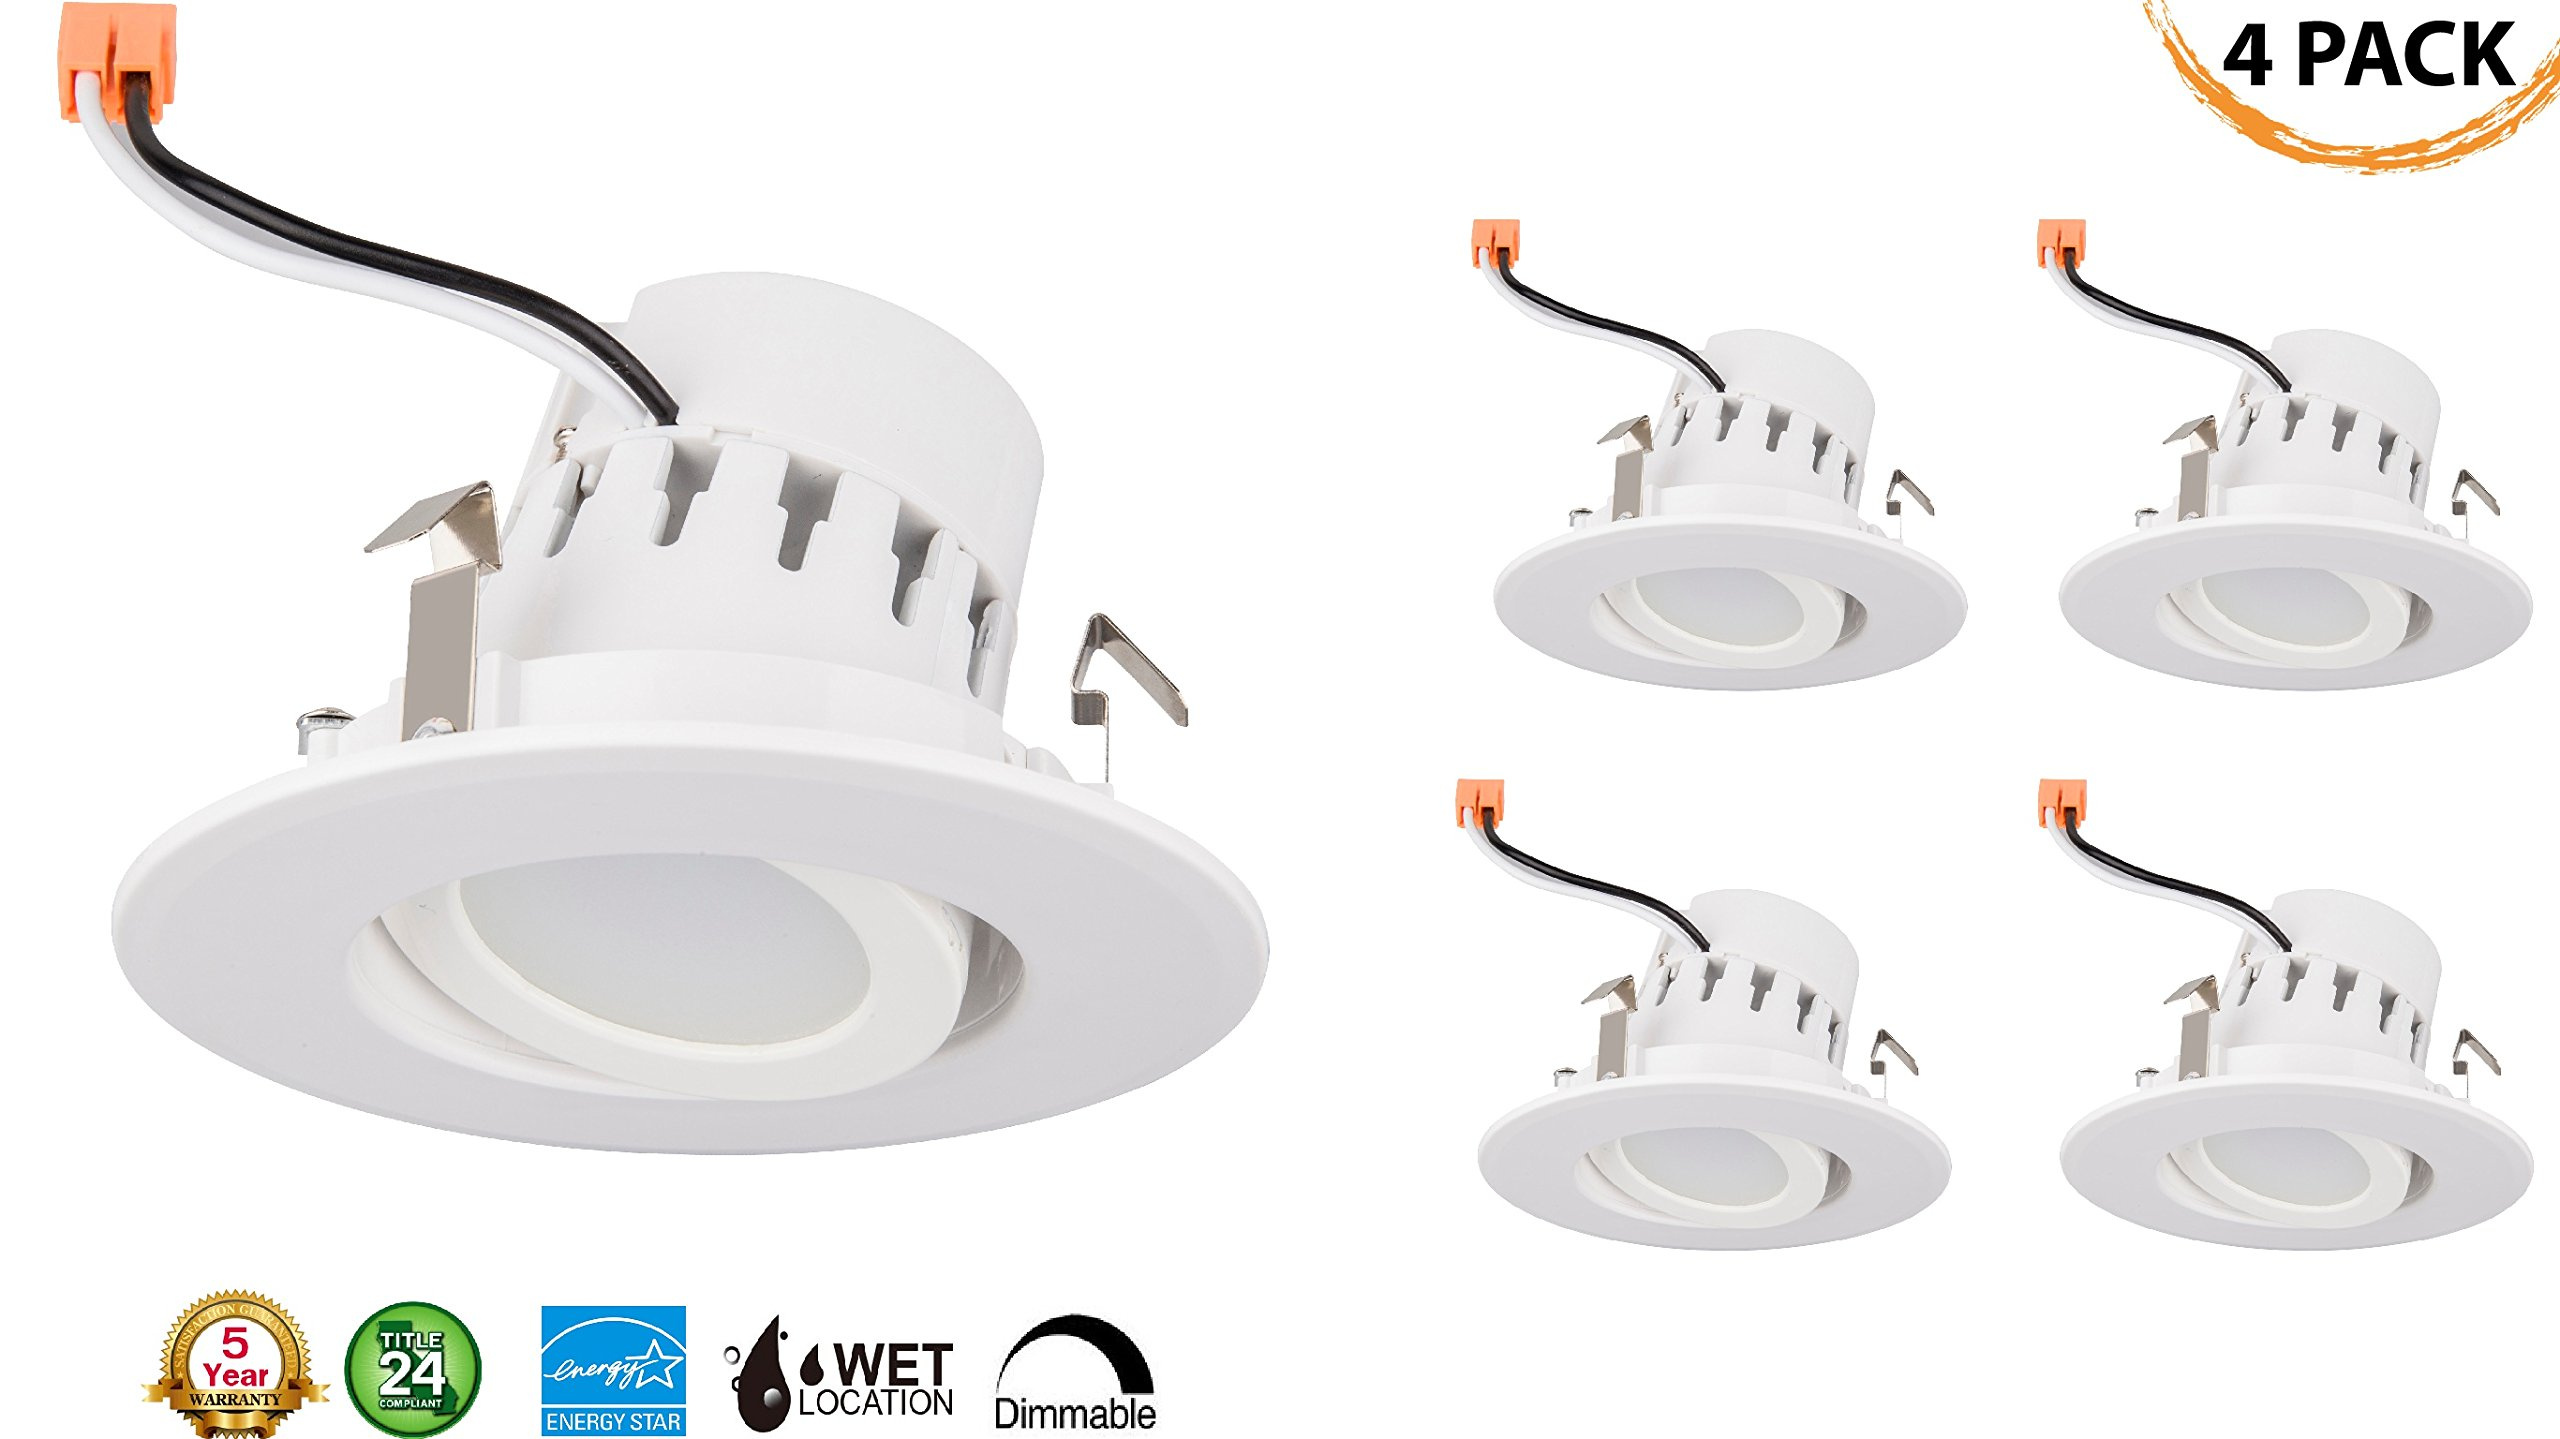 4'' Inch LED Gimbal Adjustable Rotating Downlight 10W= (75w Equivalent) Wet Loaction Rated; 25,000 Life Hours; Dimmable; 5 YR Warranty; DAYLIGHT 4000K- (4 PACK